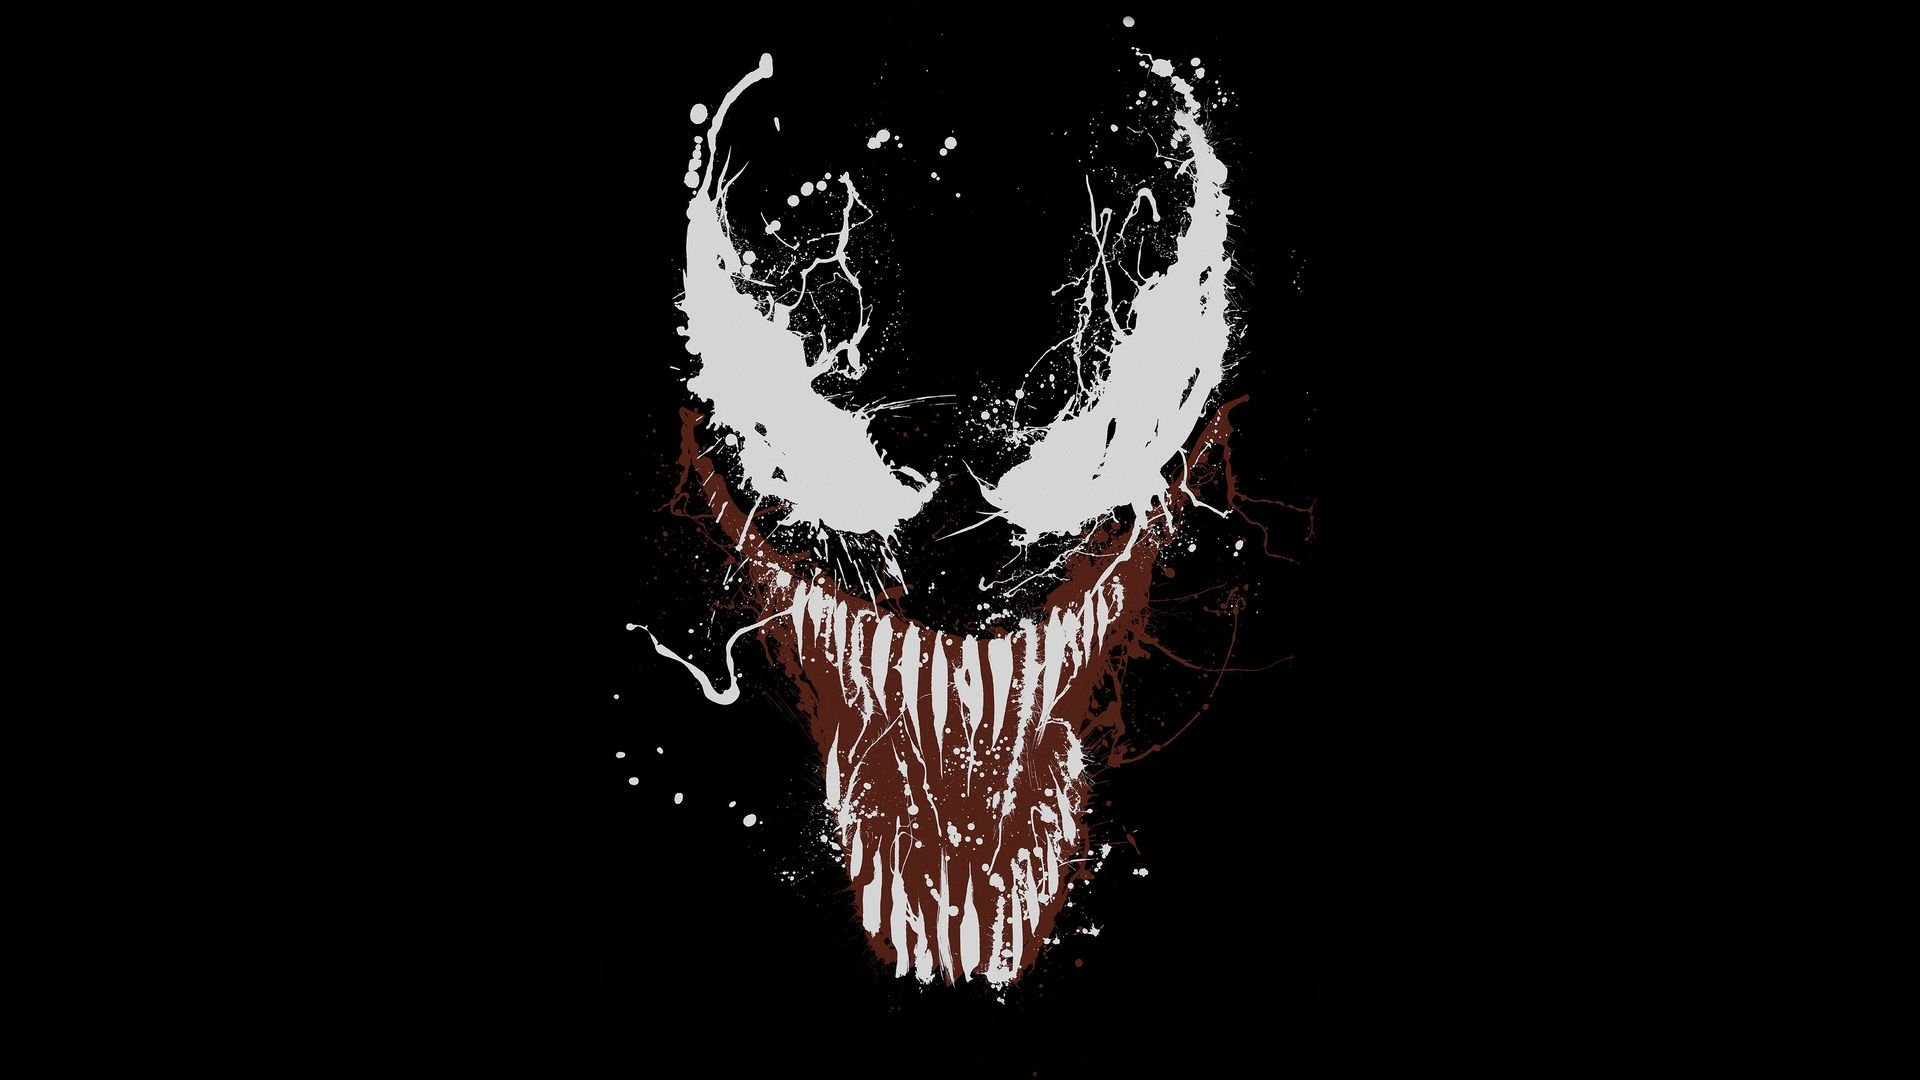 Venom Movie Full Hd Laptop Wallpapers Top Free Venom Movie Full Hd